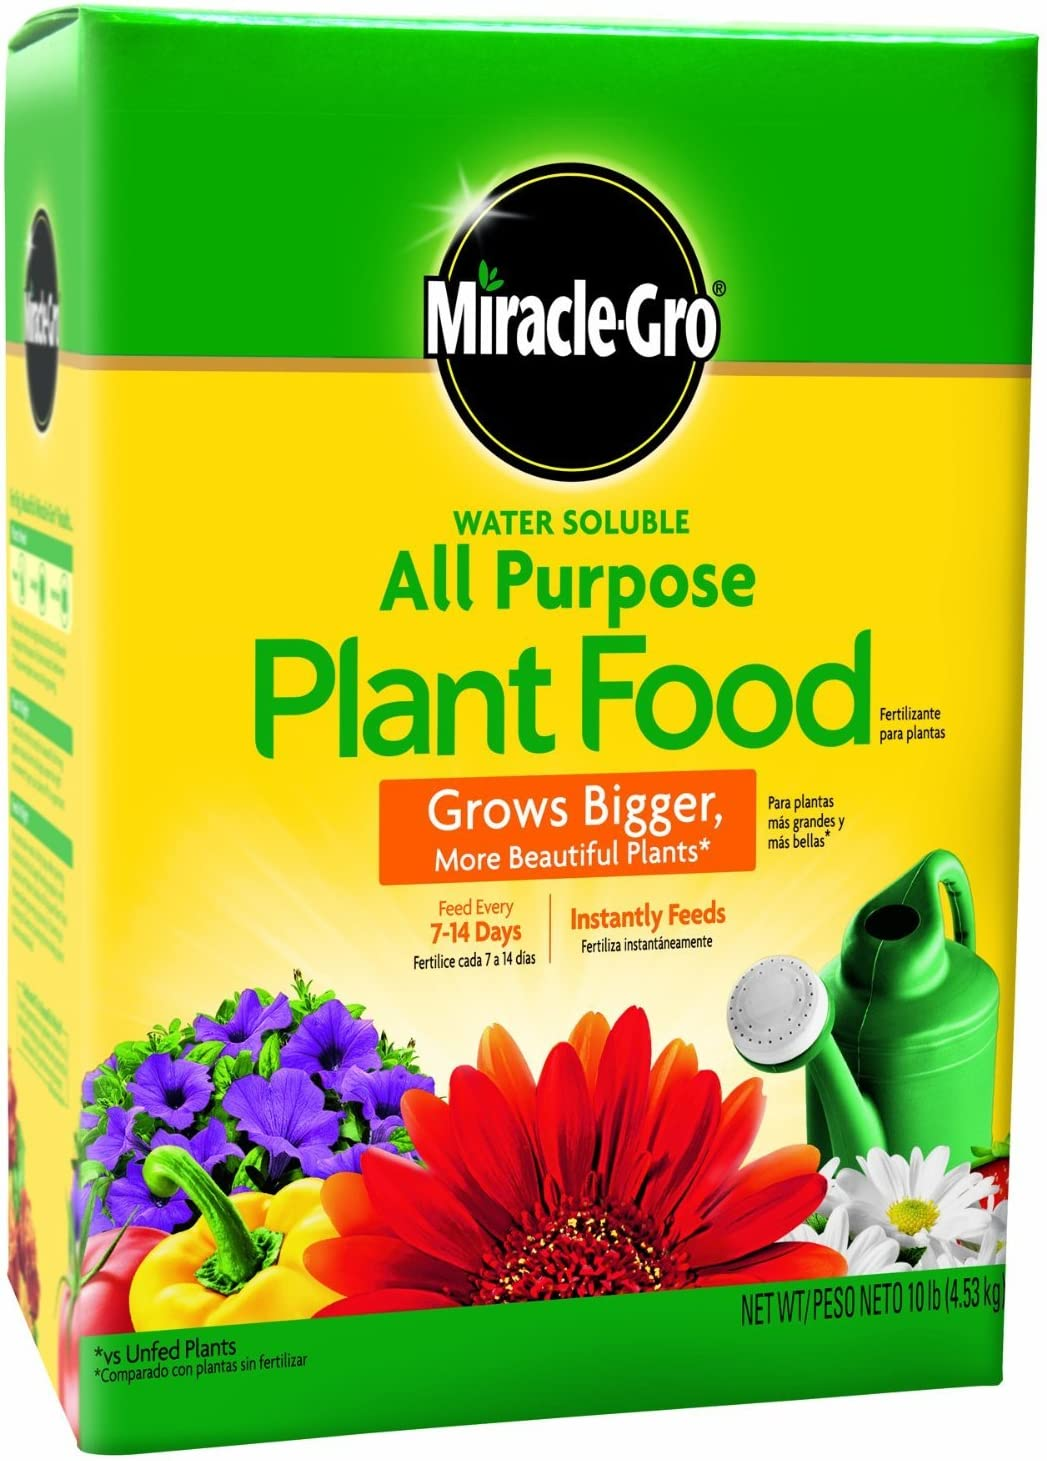 Miracle-GroAll Purpose Plant Food - 12.5 Pound